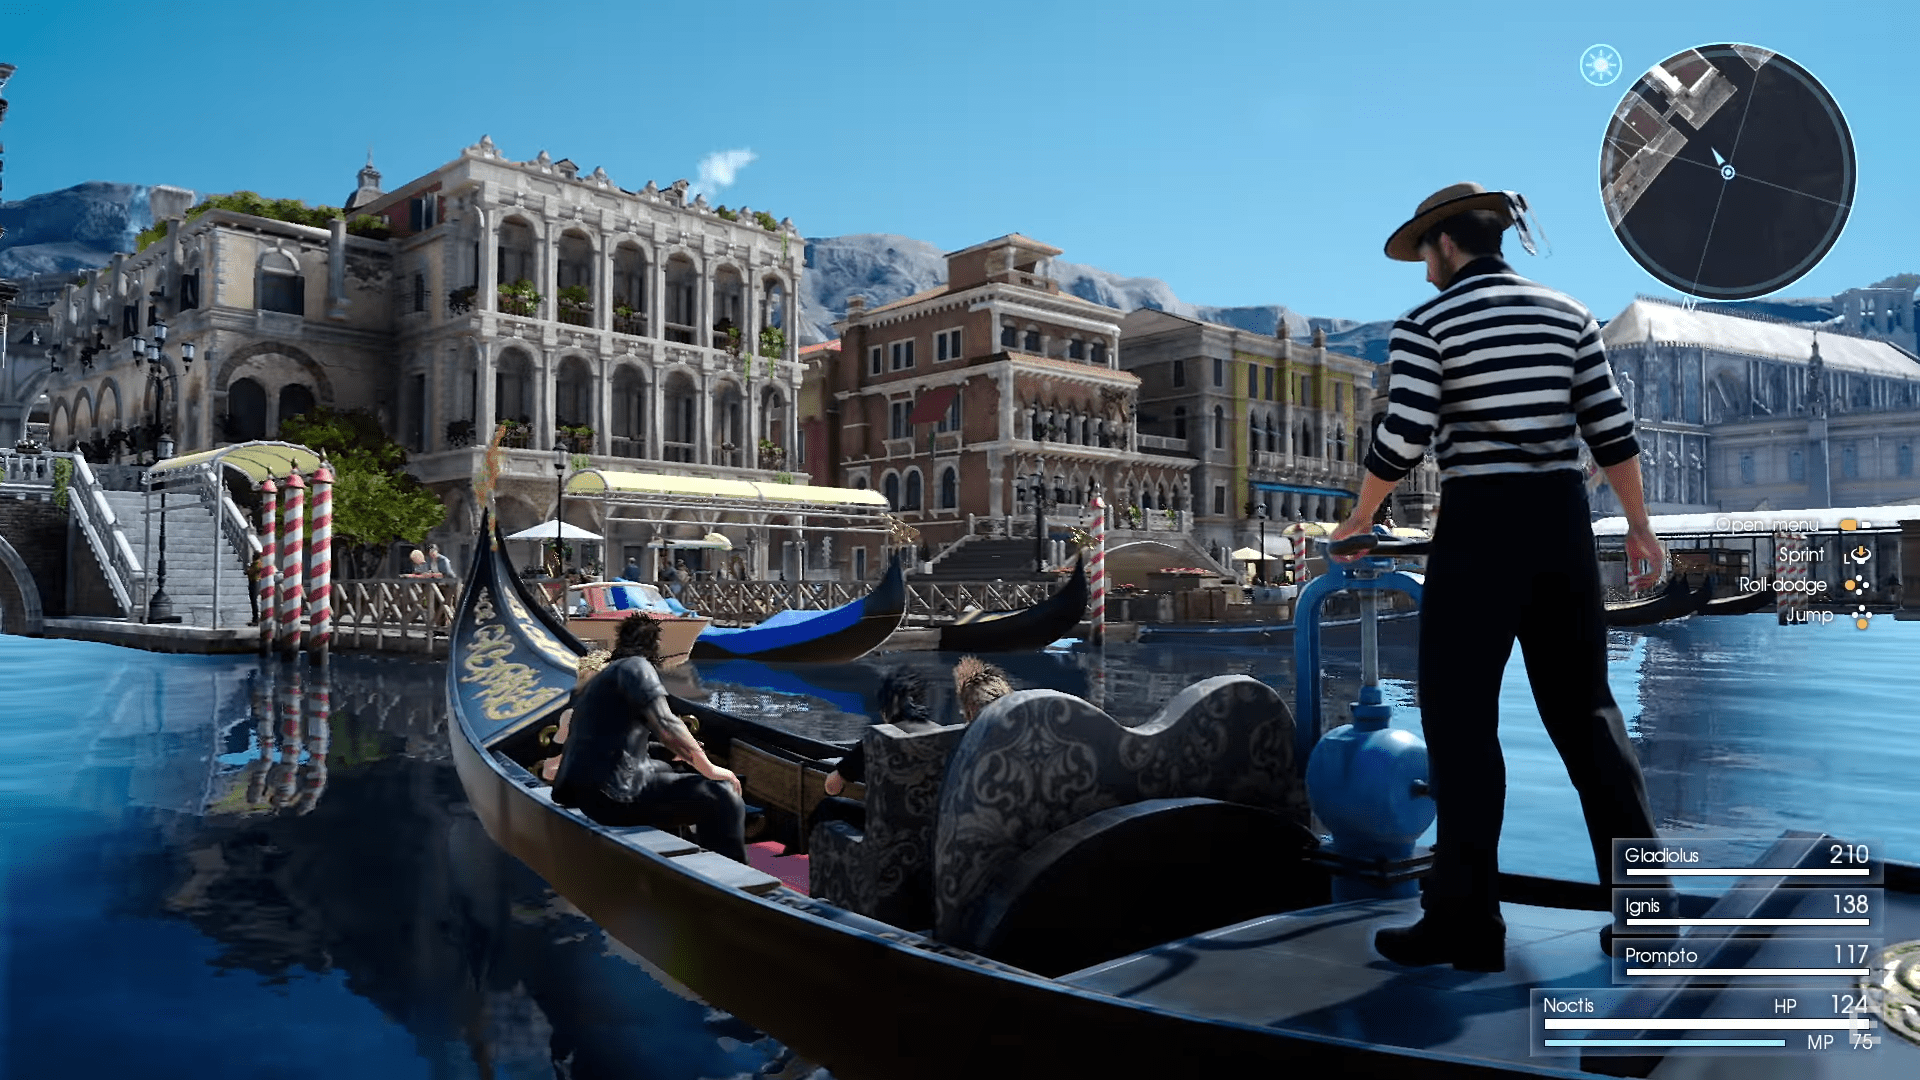 Final Fantasy 15 Shows Off A Venice Inspired City VG247